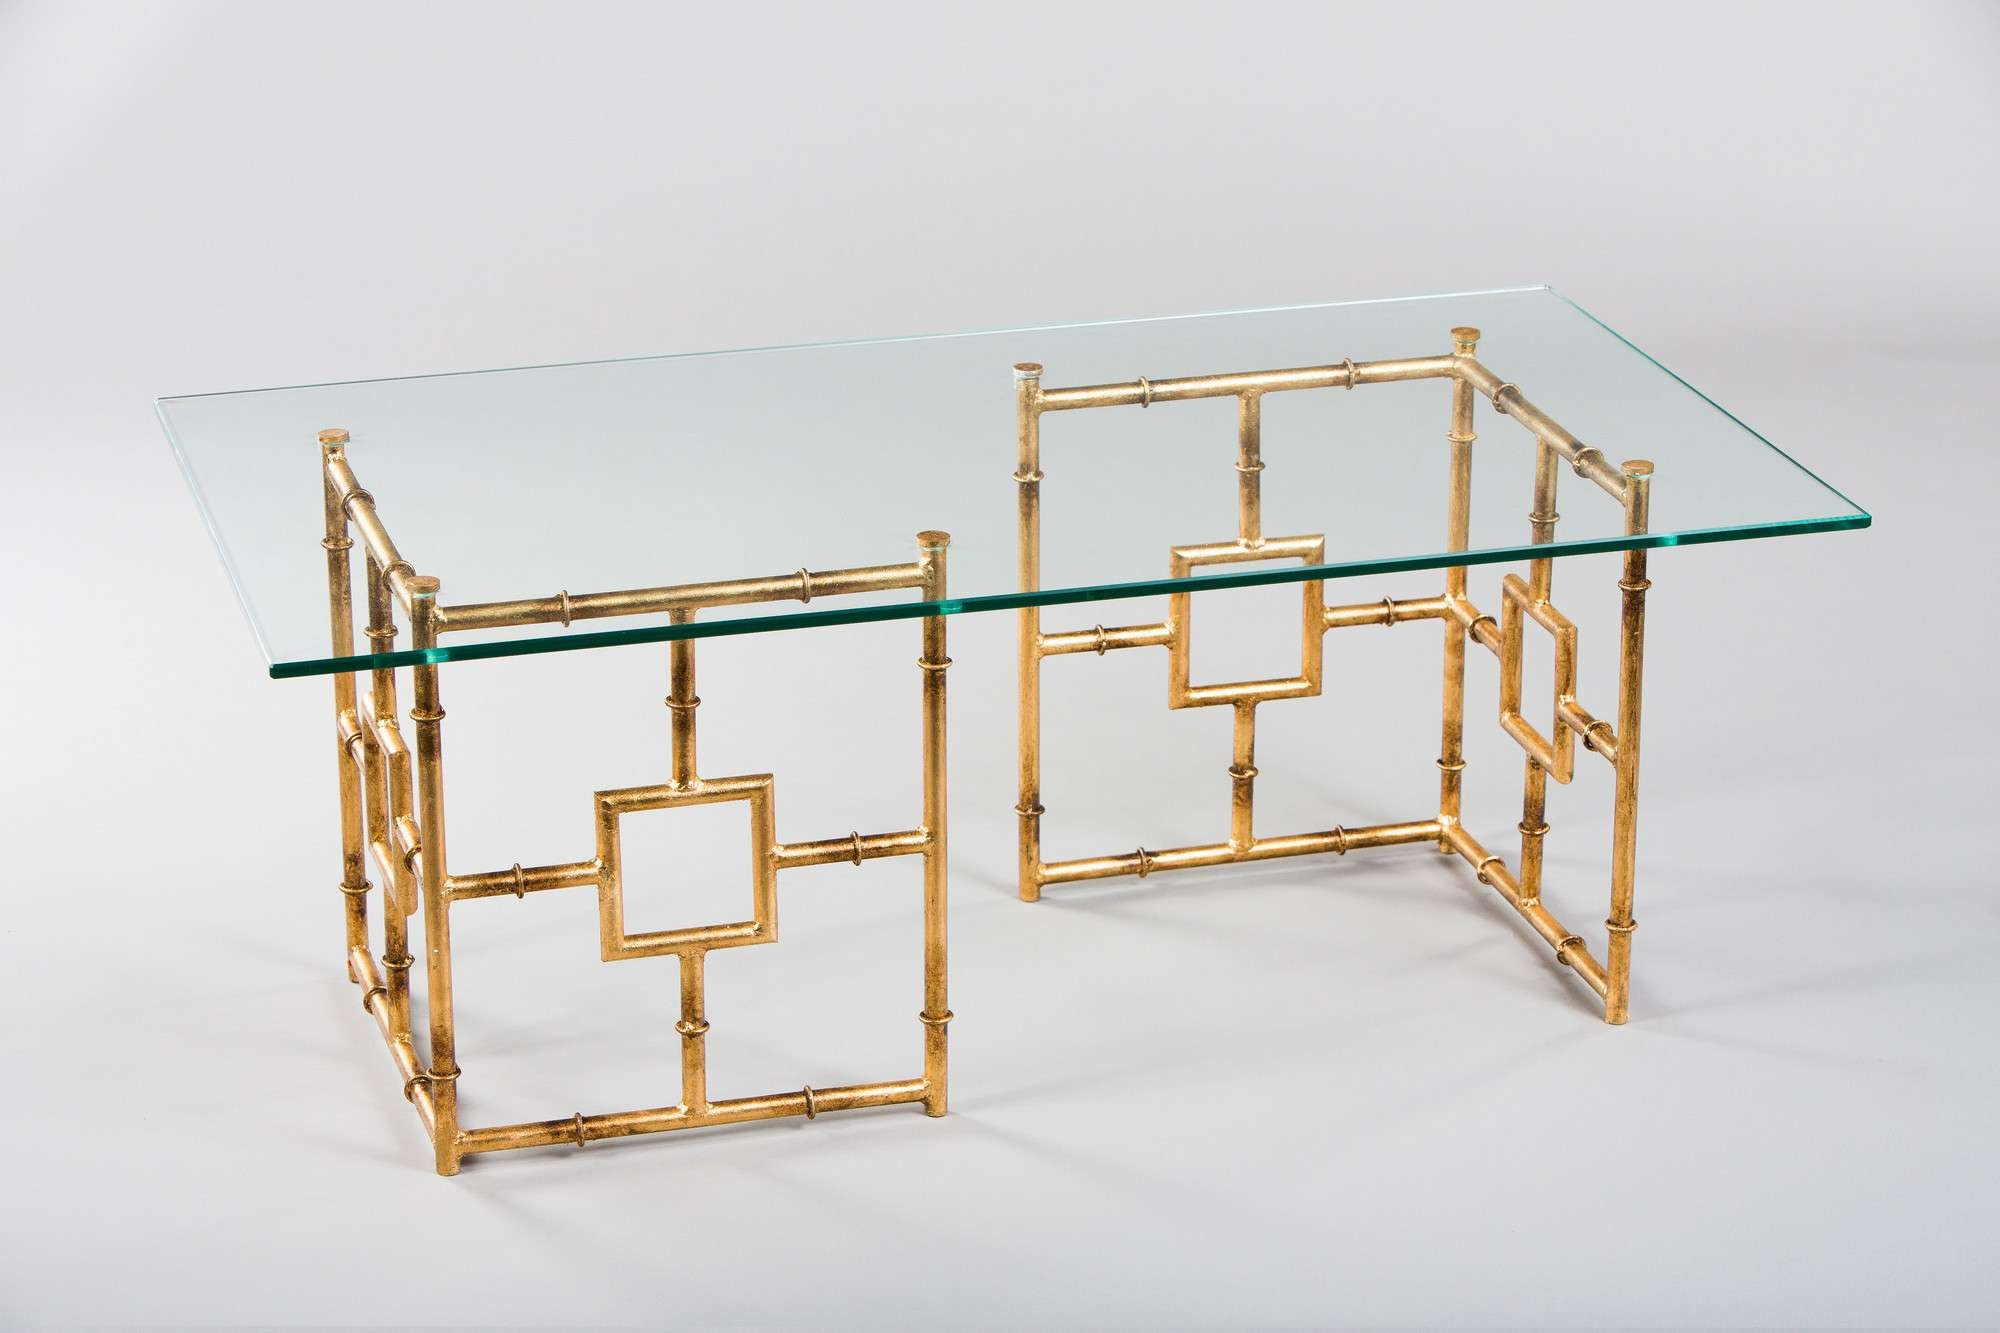 Gold Bamboo Glass Coffee Table Fresh Coffee Tables Glass Coffee Regarding Recent Gold Bamboo Coffee Tables (View 10 of 20)